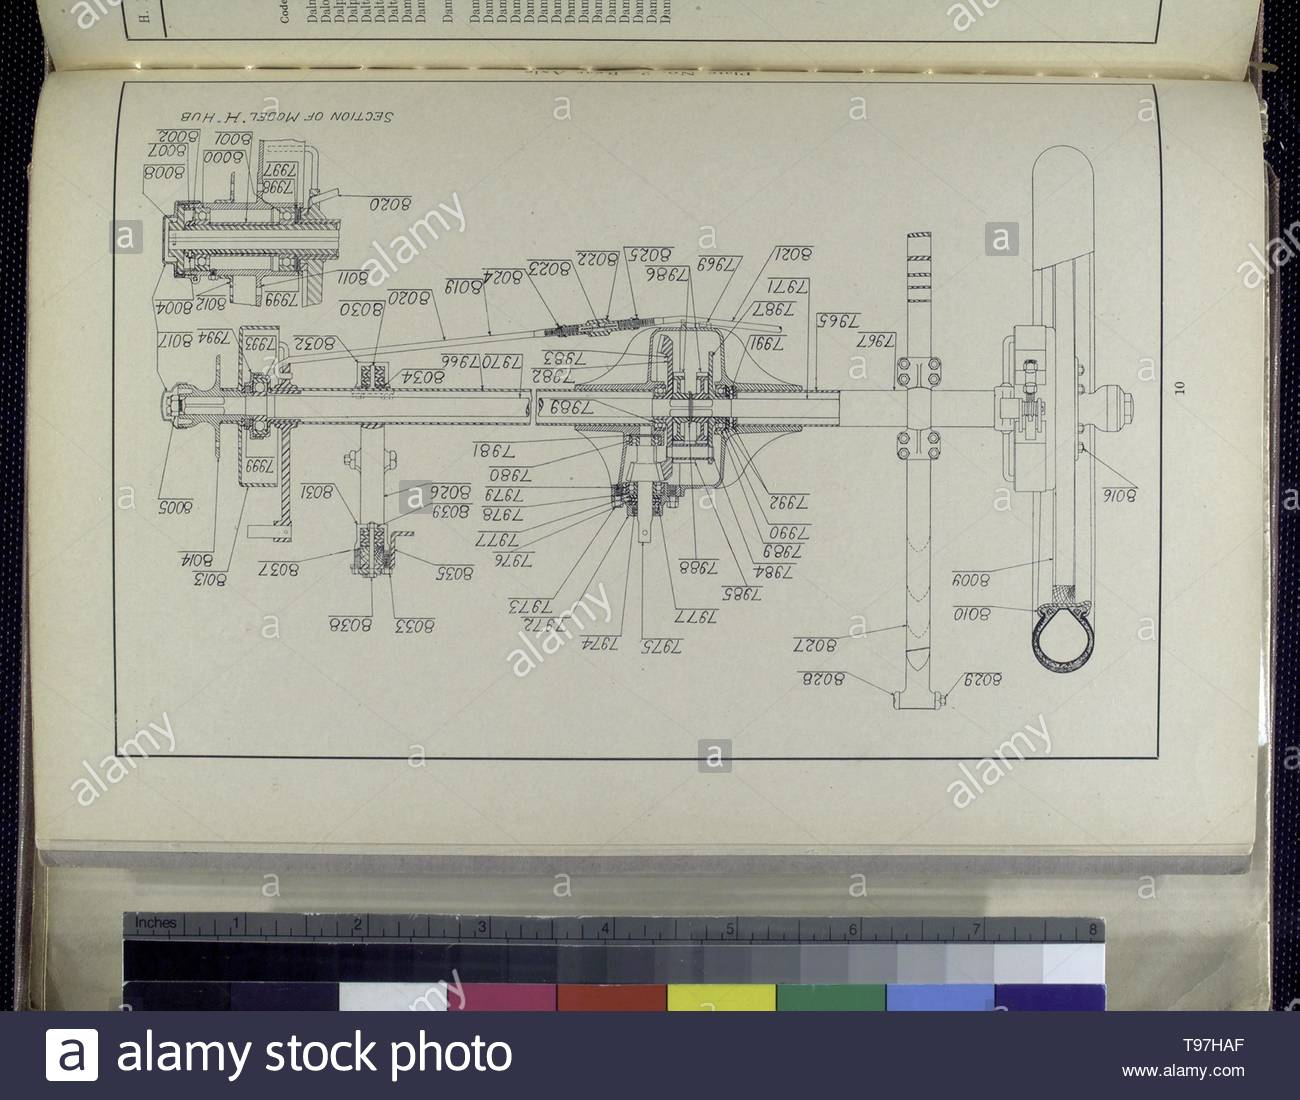 Anonymous-Plate No  2 - Rear axle [Drawing] - Stock Image